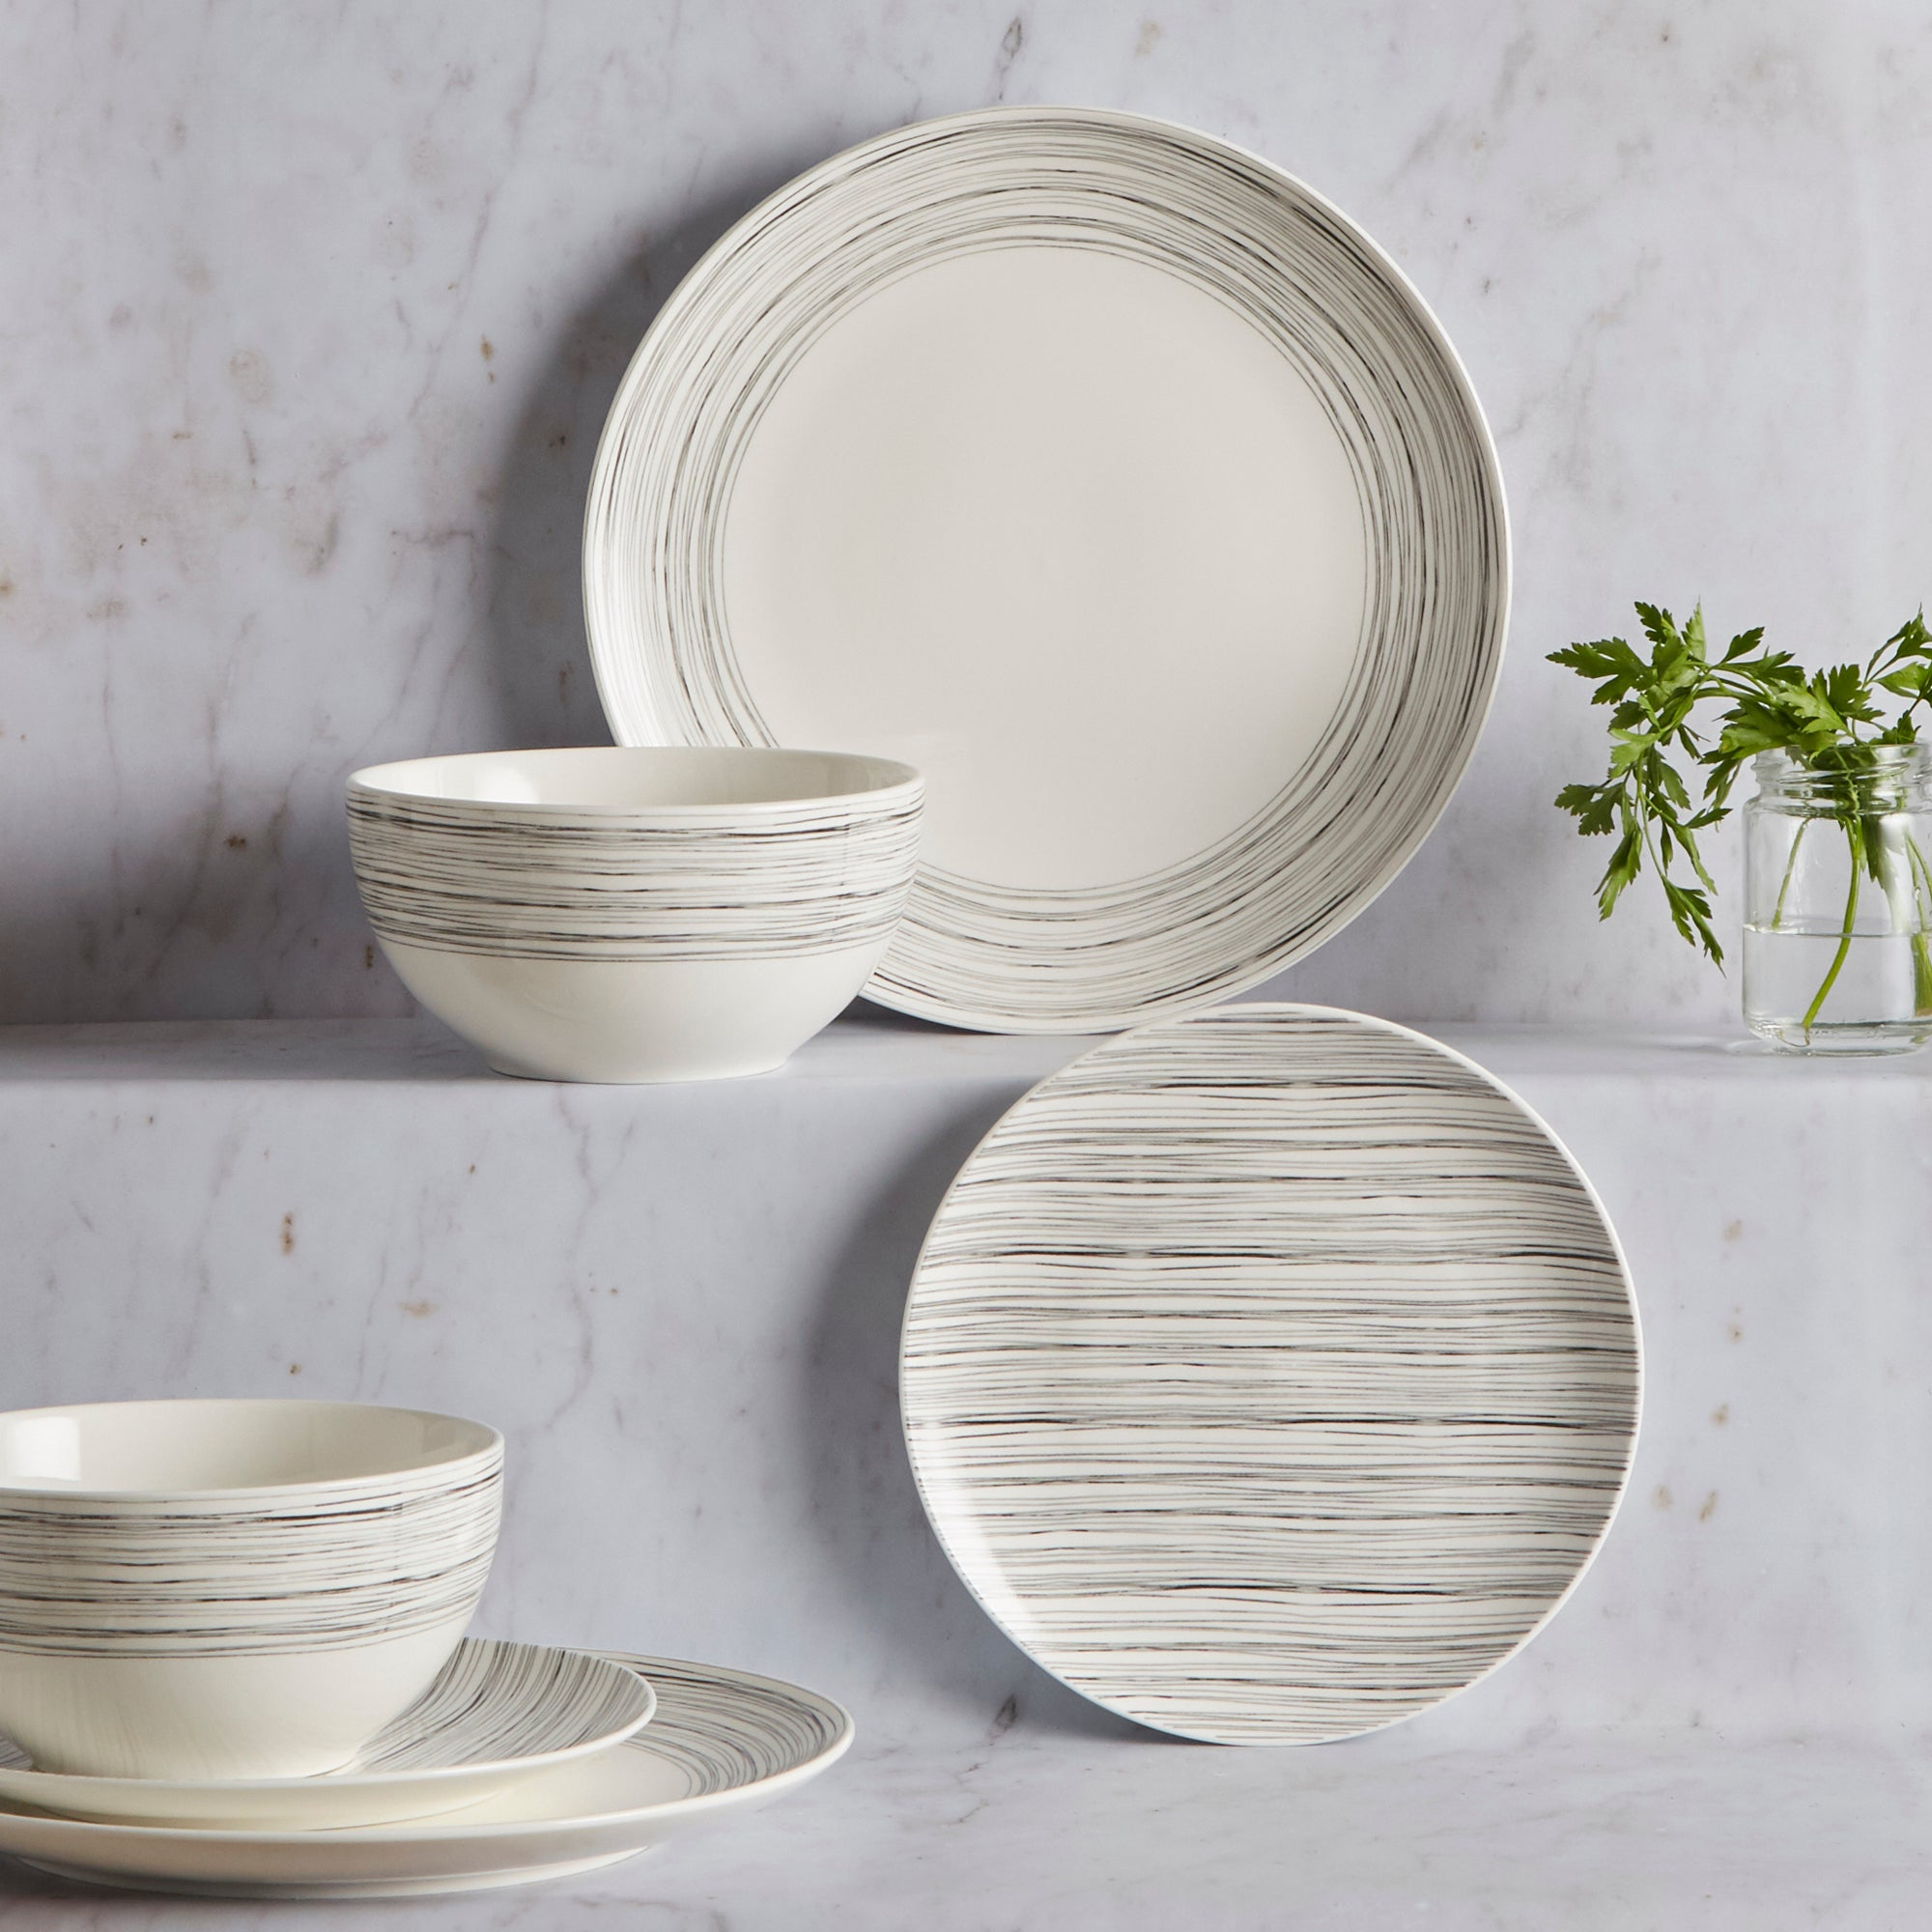 Image of Simplicity 12 Piece Dinner Set White